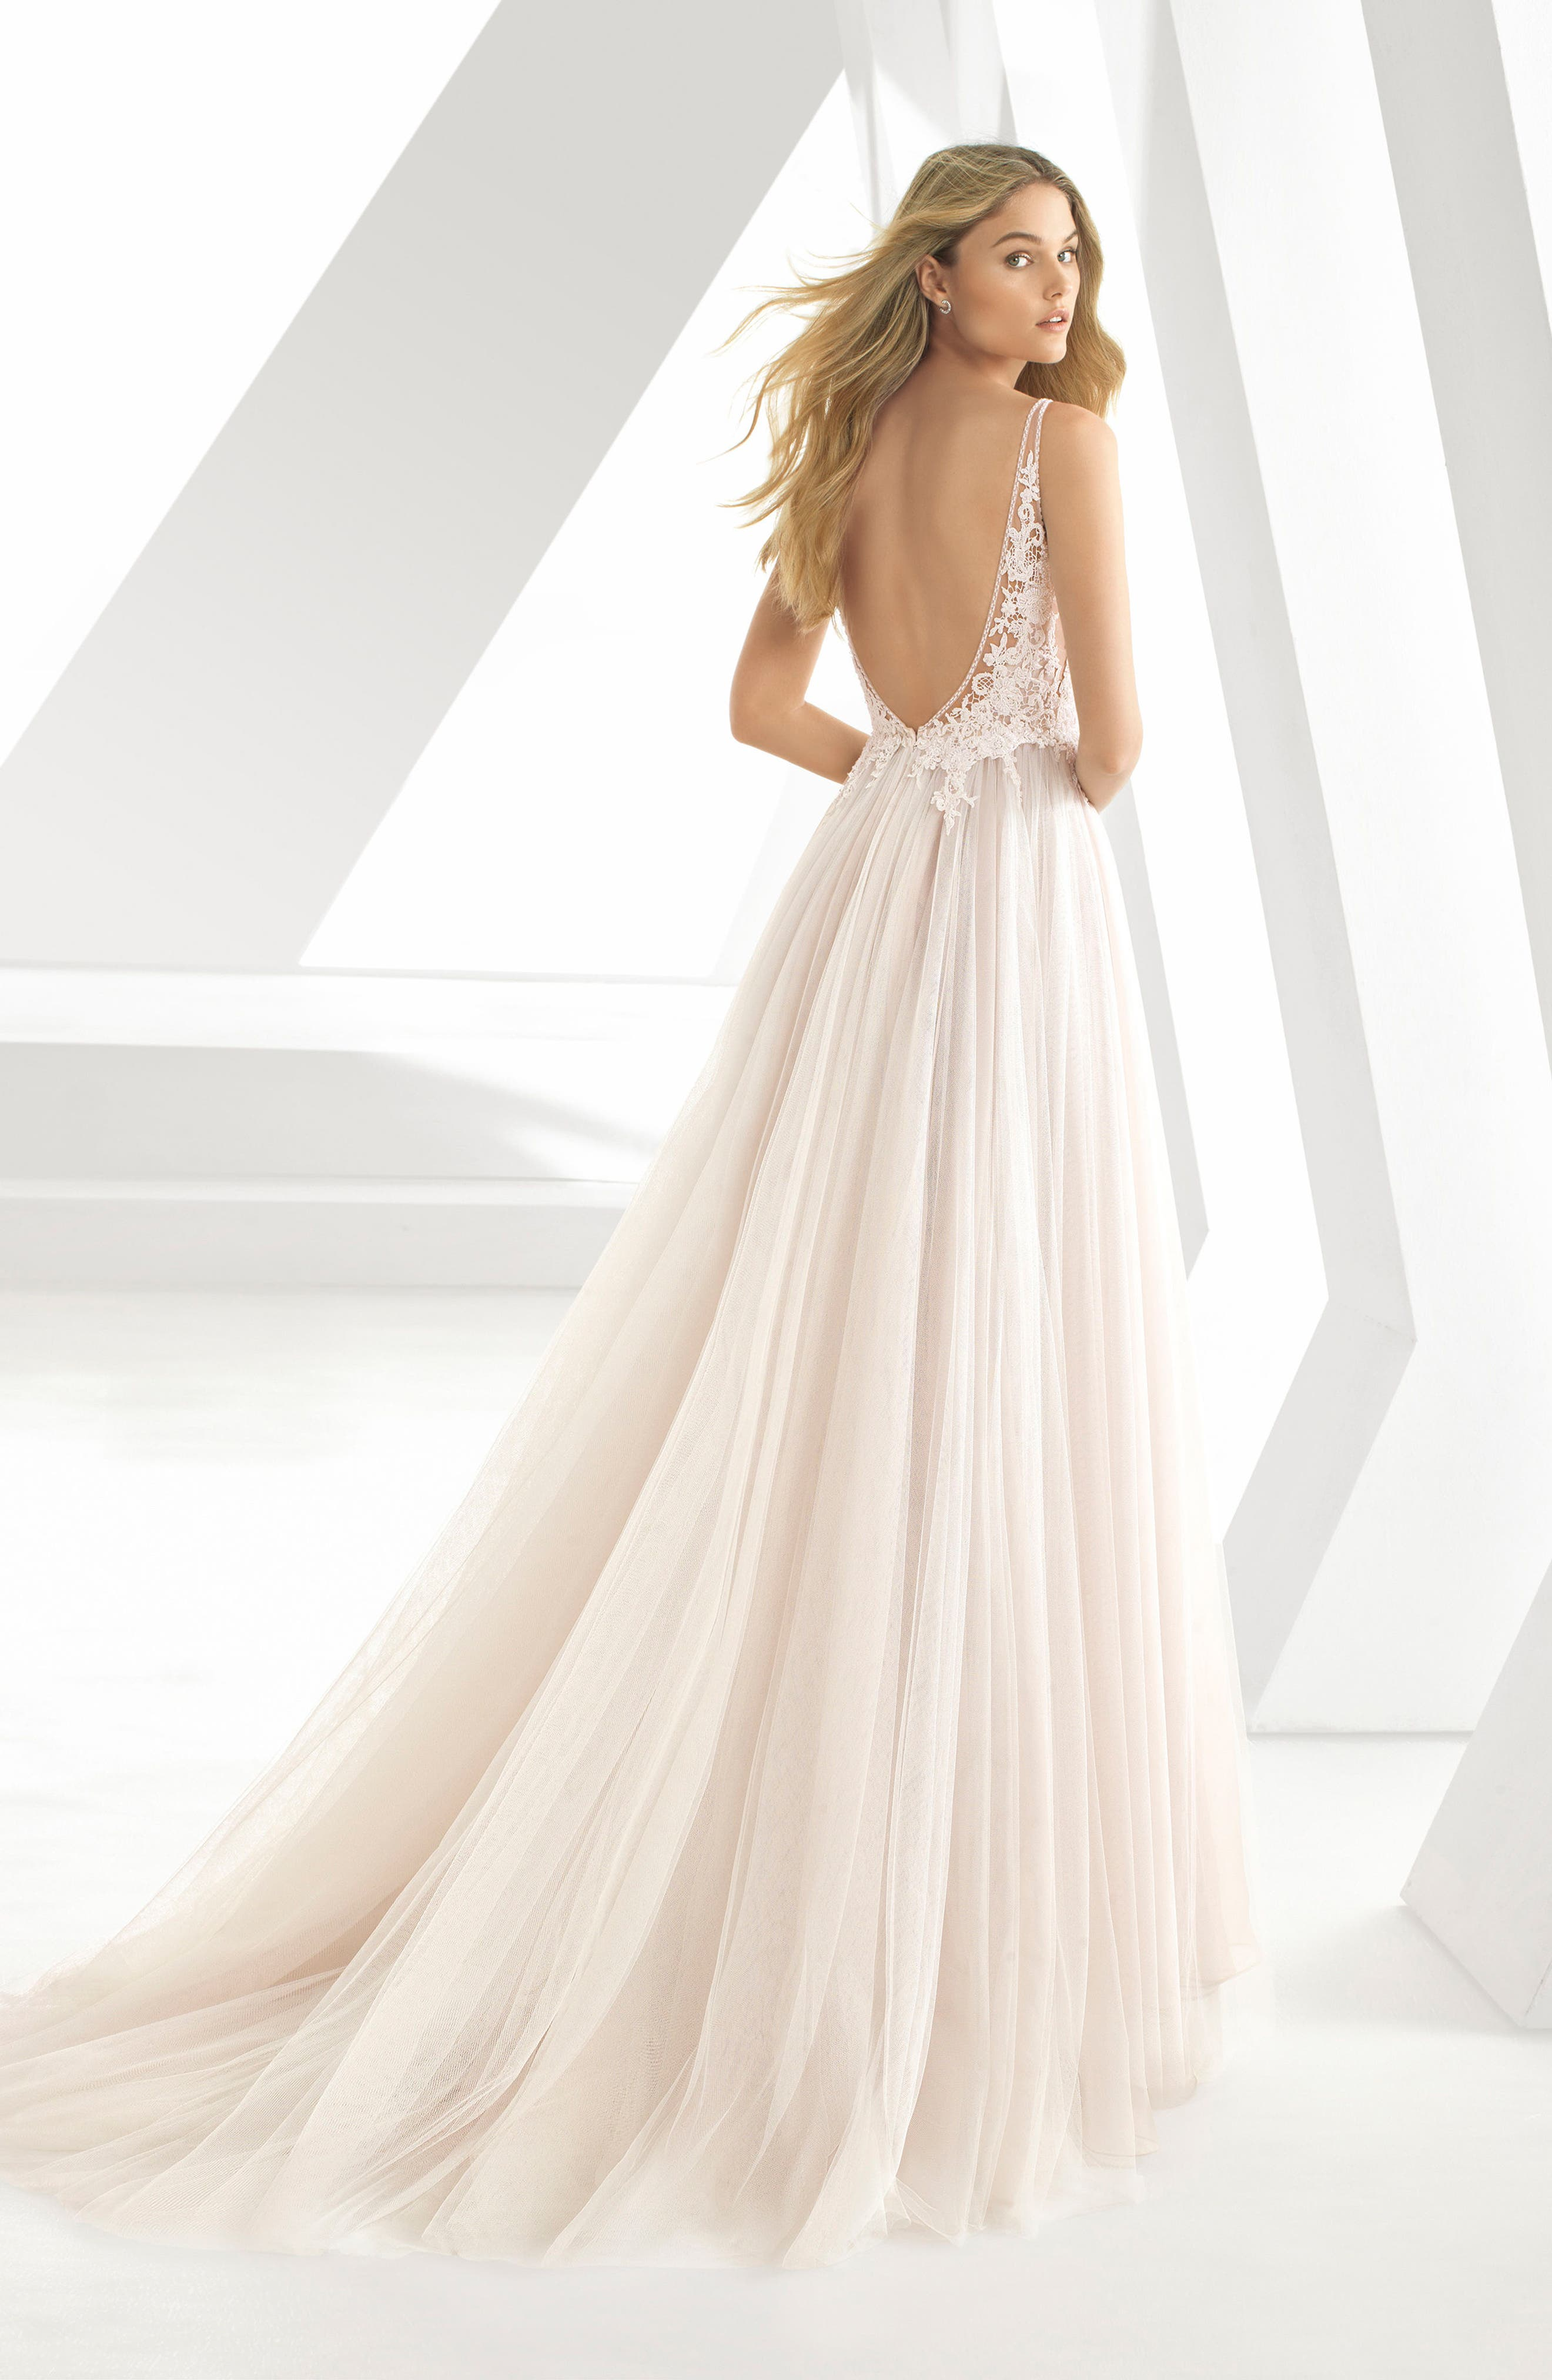 ROSA CLARÁ, Donata Front Slit Lace & Tulle Wedding Gown, Alternate thumbnail 2, color, NATURAL/ NUDE